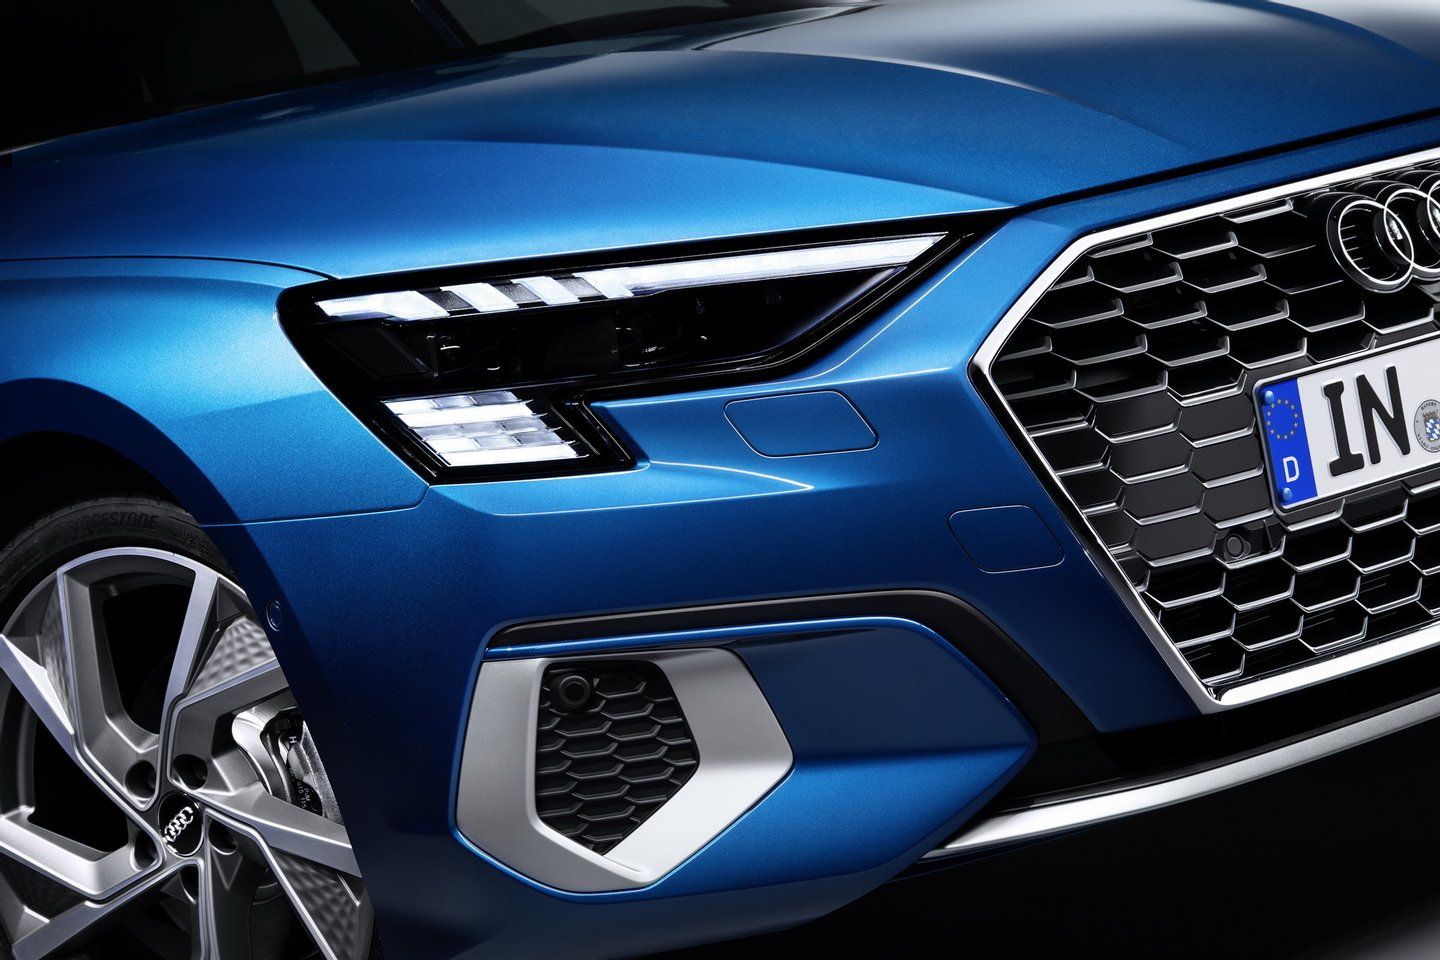 May. Audi A3 Sportback arrives with more arguments